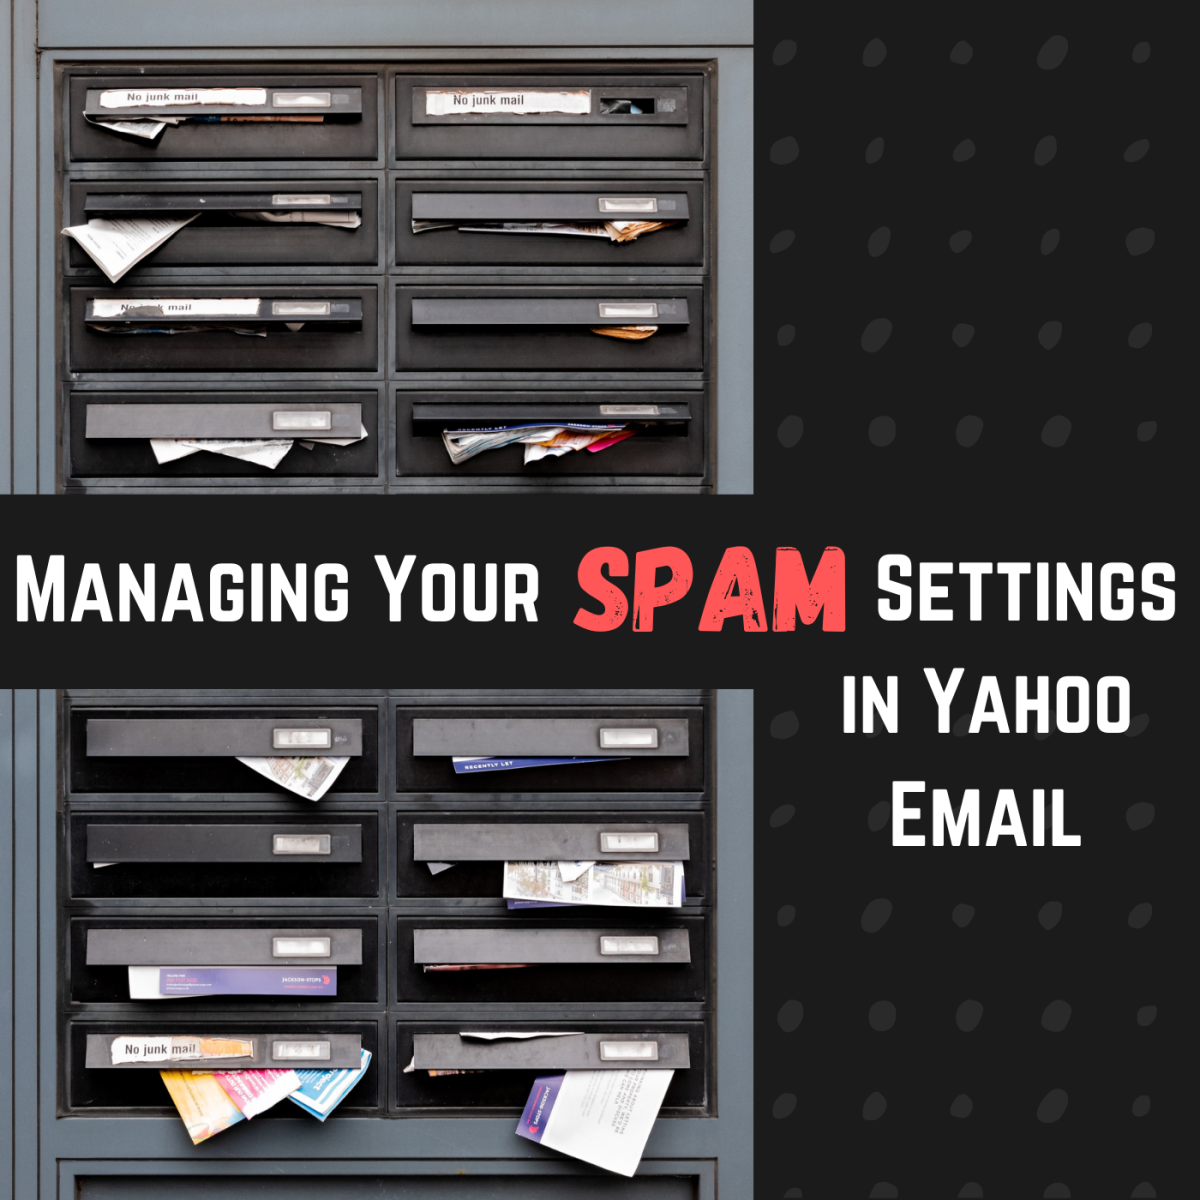 Learn how to set up your Yahoo email to avoid filling your inbox with spam.